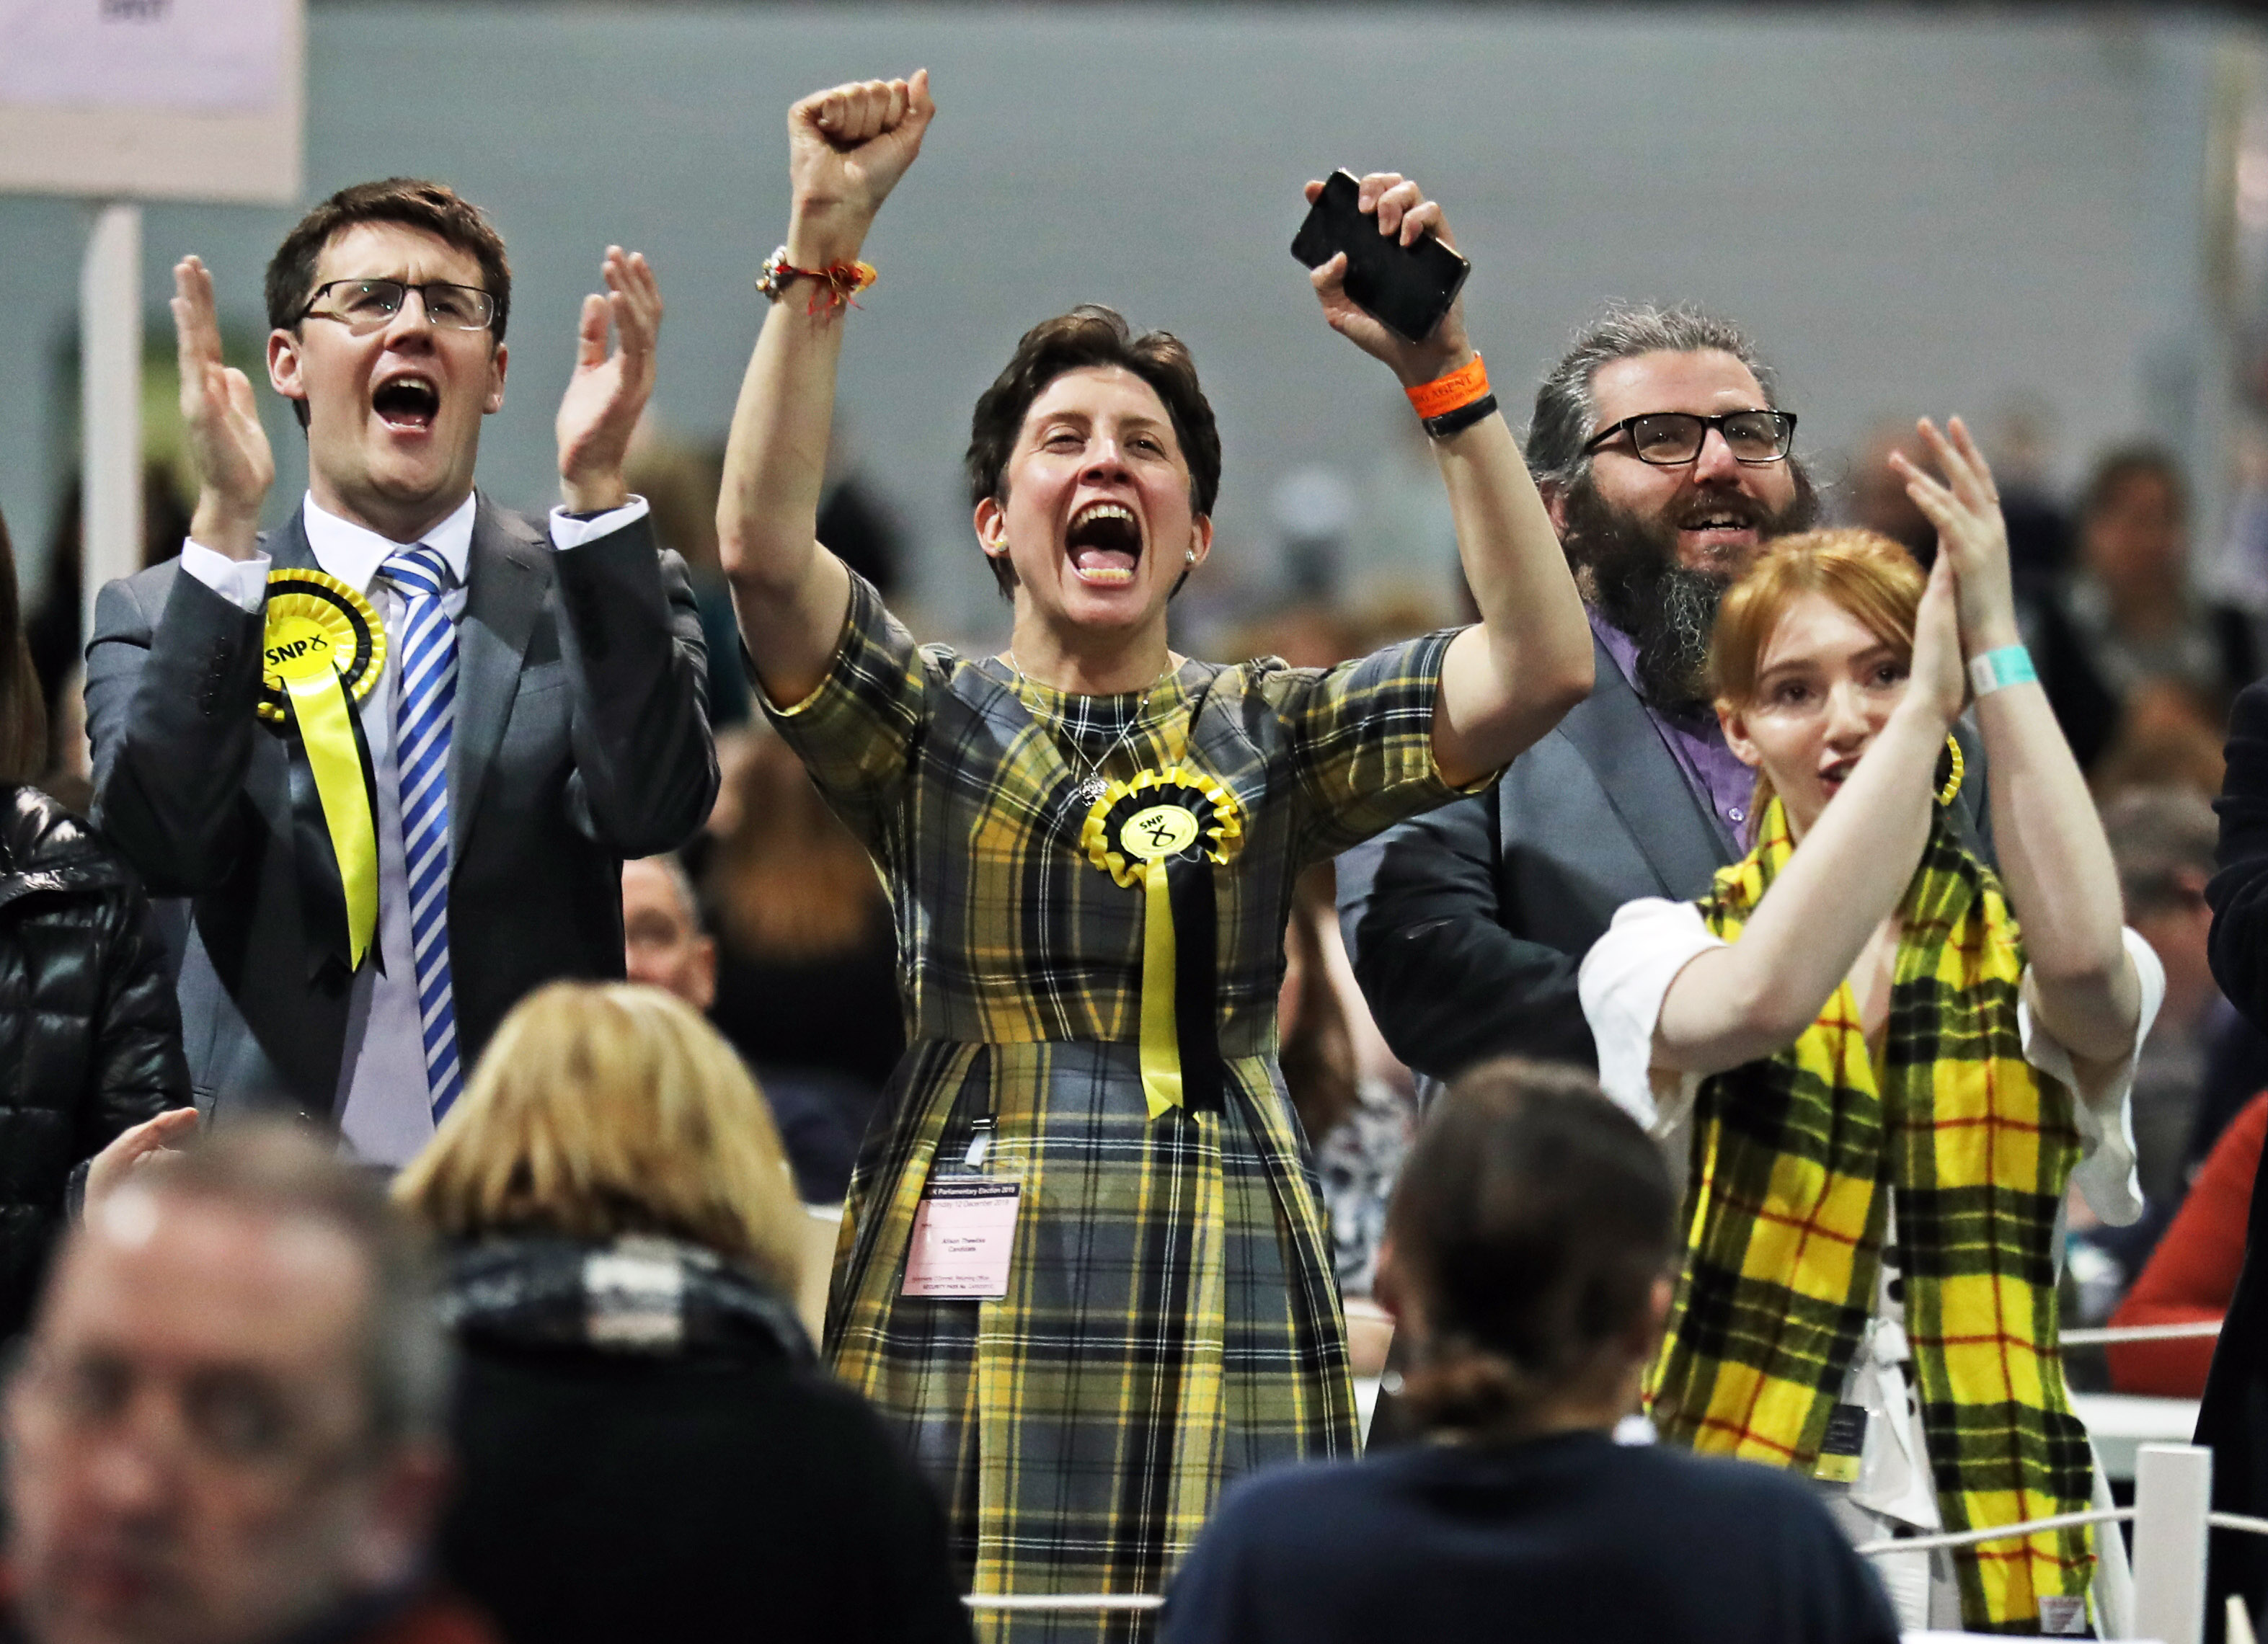 The SNP's Alison Thewliss (centre) celebrates a victory for her party in the 2019 General Election during the count at SEC Centre in Glasgow. (Photo by Andrew Milligan/PA Images via Getty Images)